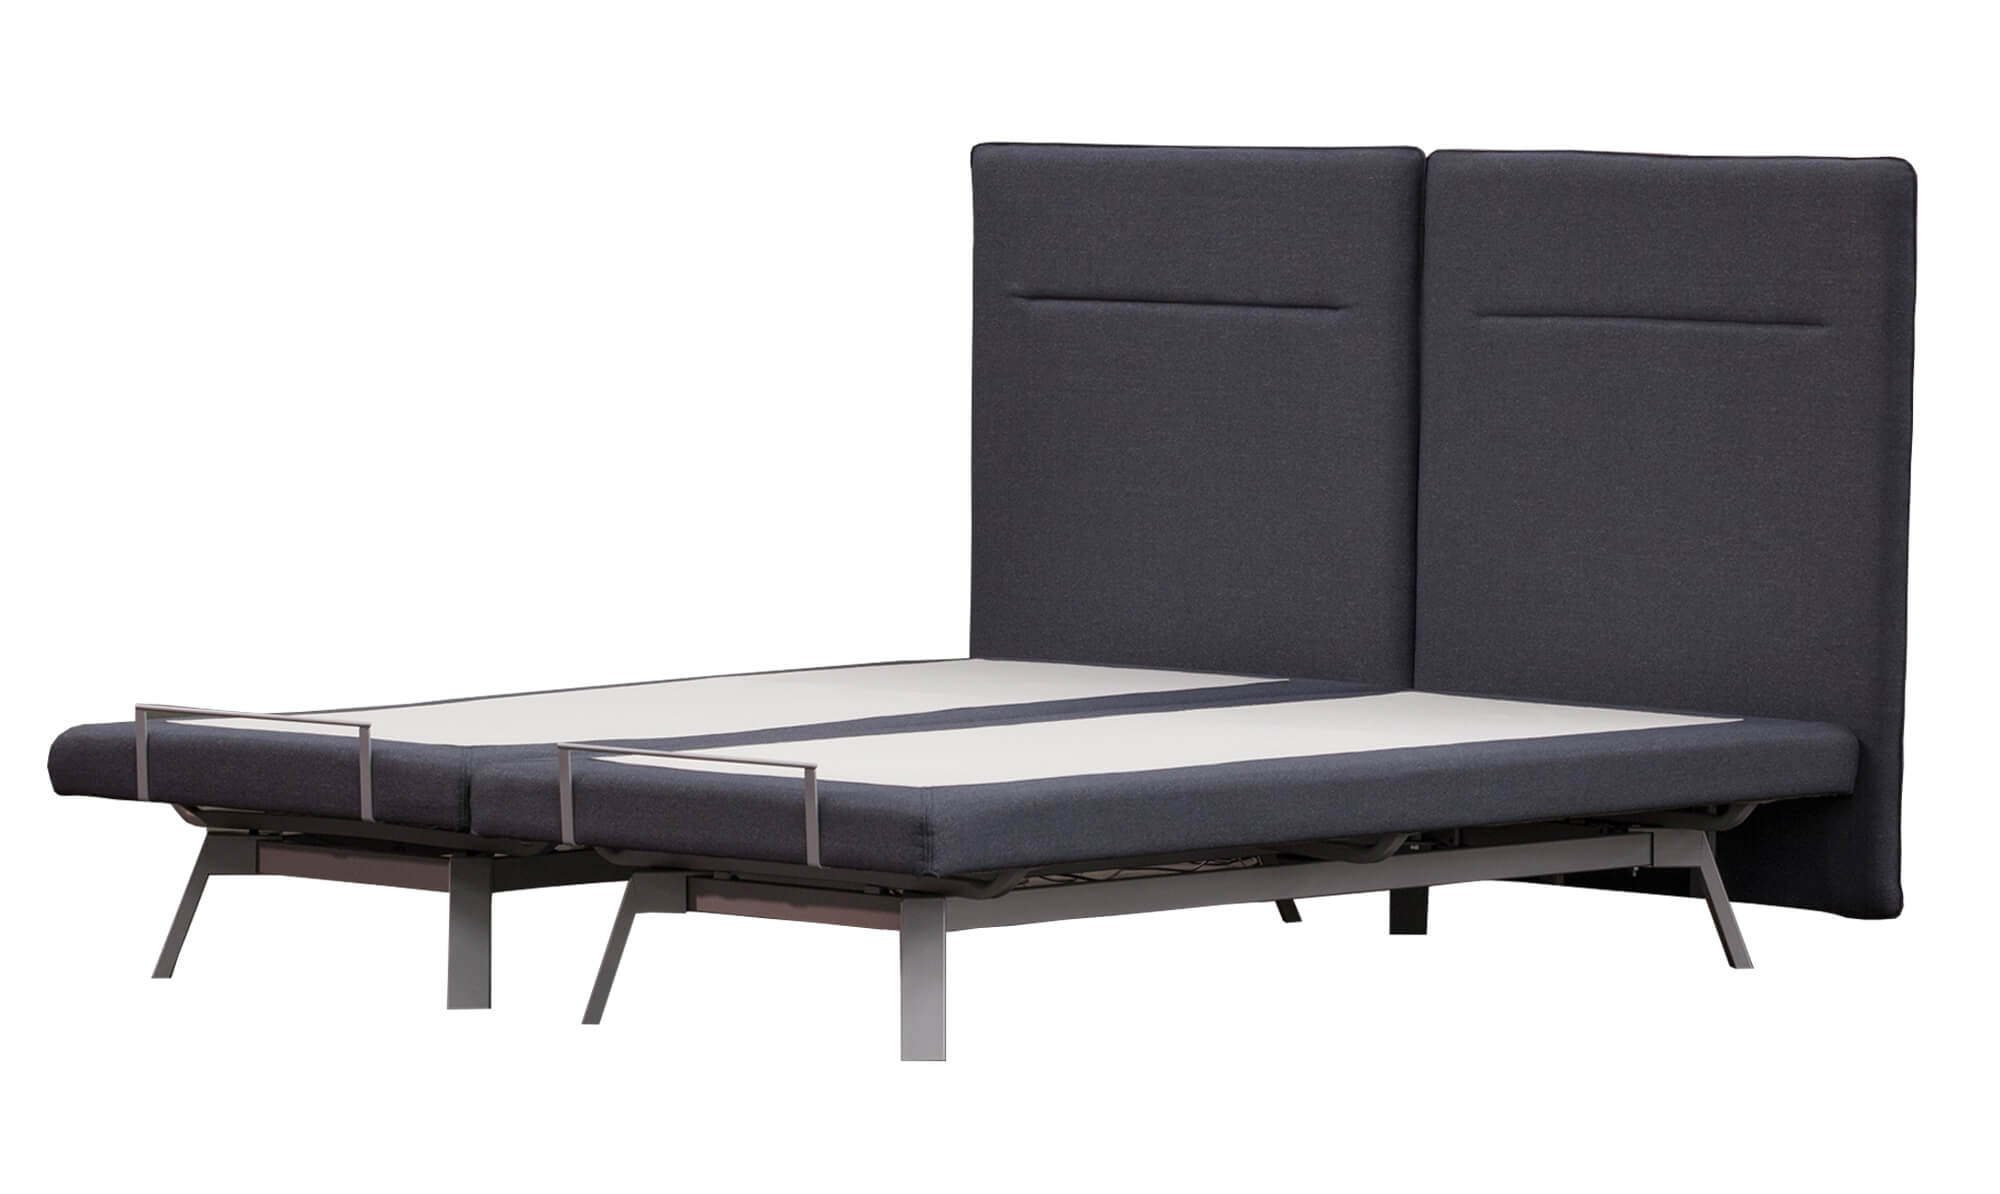 kuperus boxspring bett arioso th nig ag bettenhaus st gallen. Black Bedroom Furniture Sets. Home Design Ideas